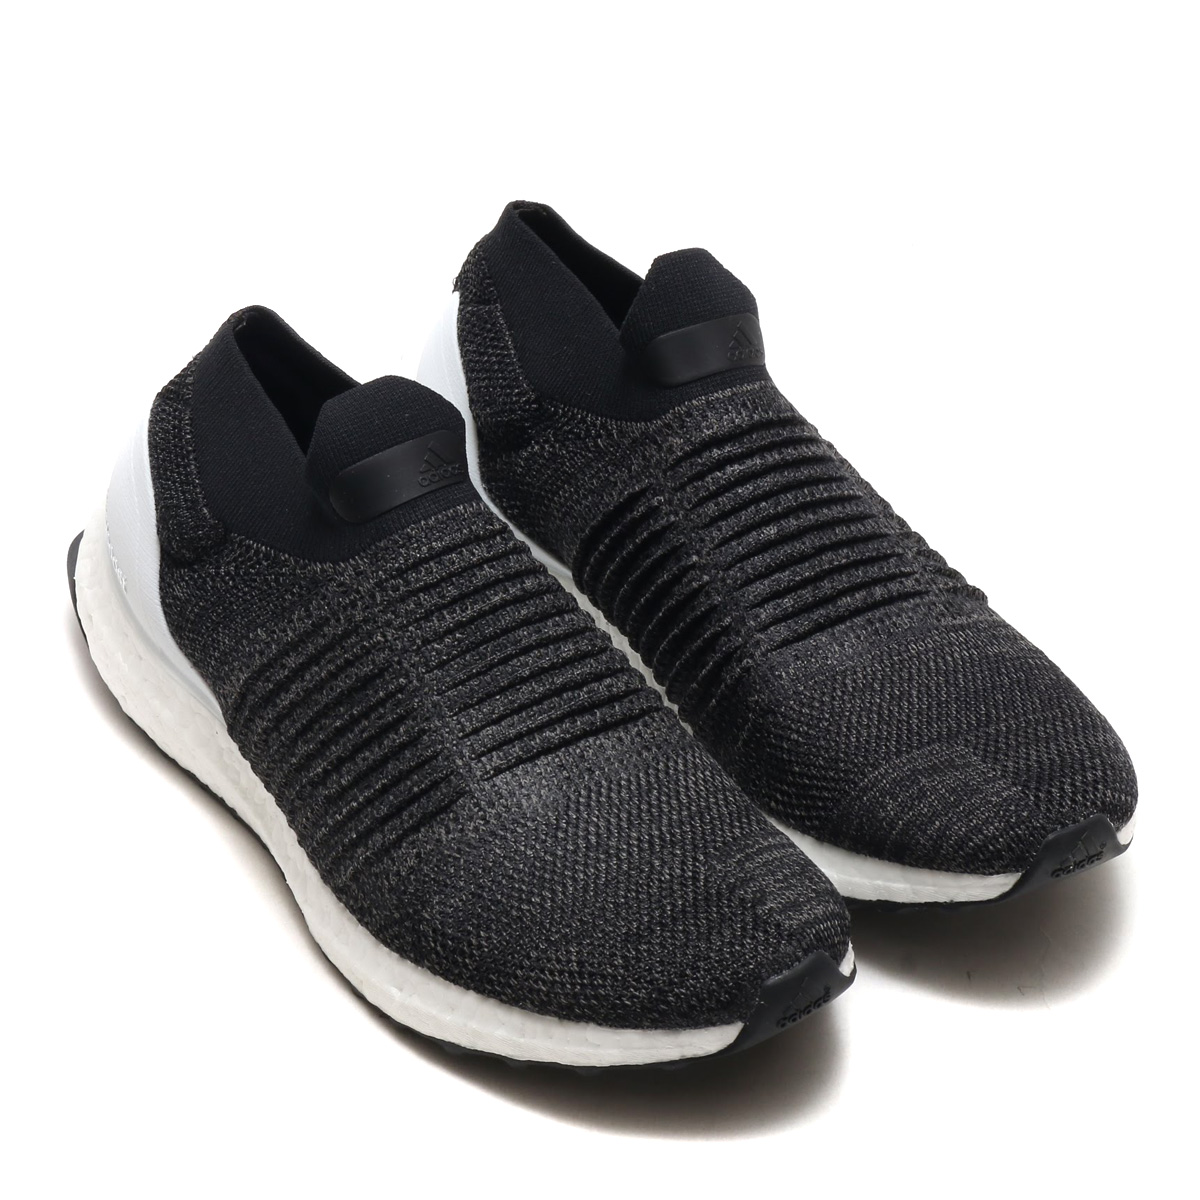 watch 37288 ec3ac adidas UltraBOOST LACELESS (Adidas ultra boost race reply) (core black /  core black / solar orange) 18SS-I